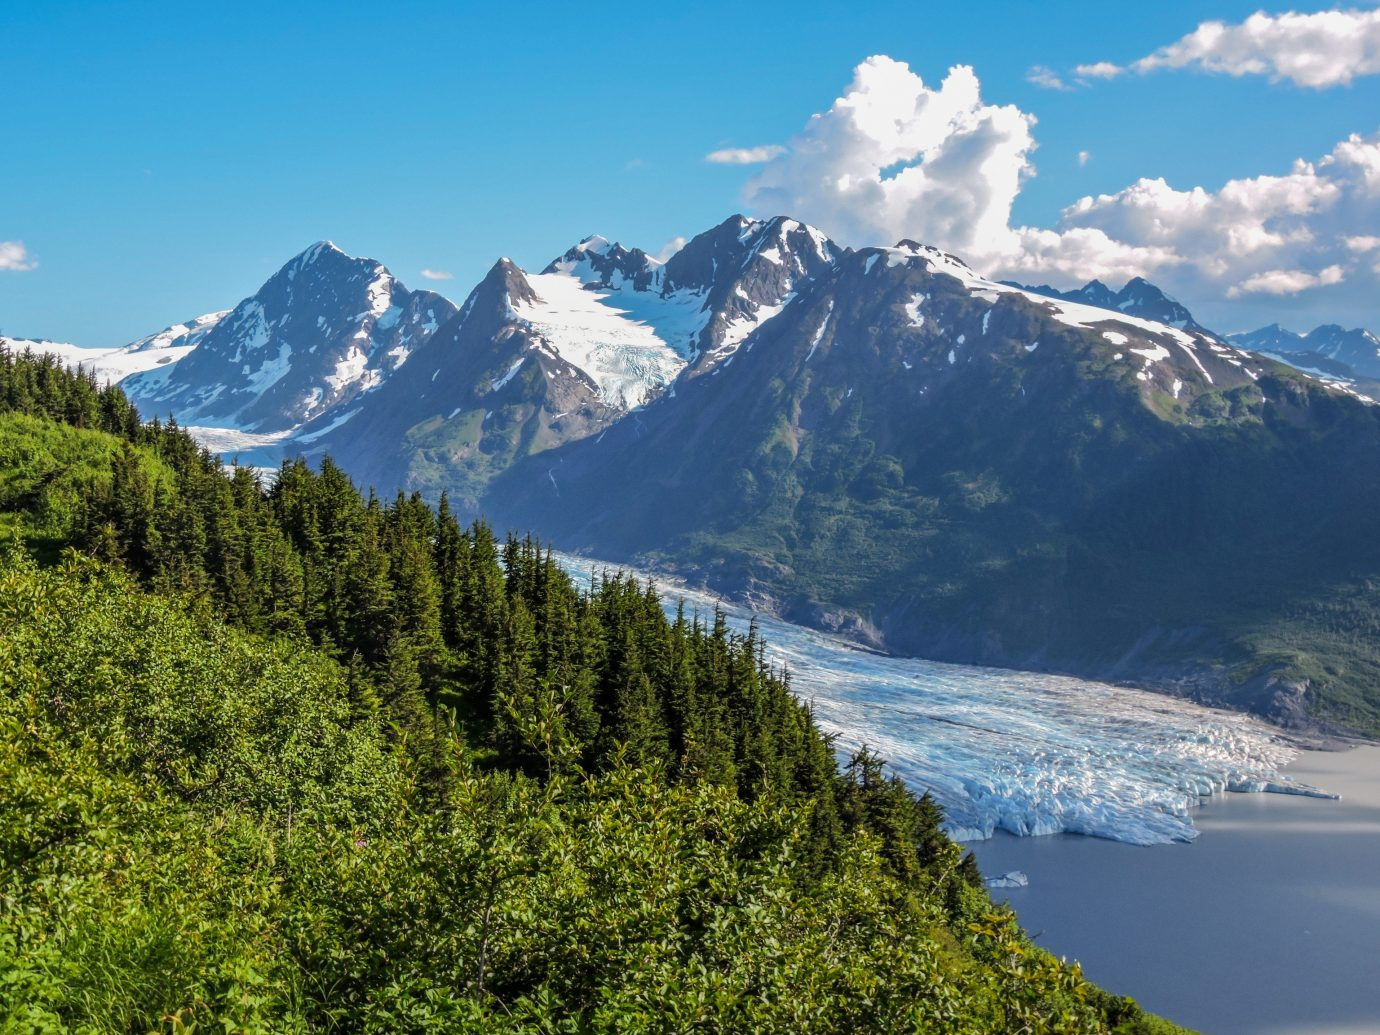 Outdoors + Adventure mountain outdoor sky tree highland snow mountainous landforms Nature mountain range geographical feature landform wilderness fell ridge alps fjord Lake background mountain pass loch landscape Adventure meadow walking plateau glacial landform national park distance